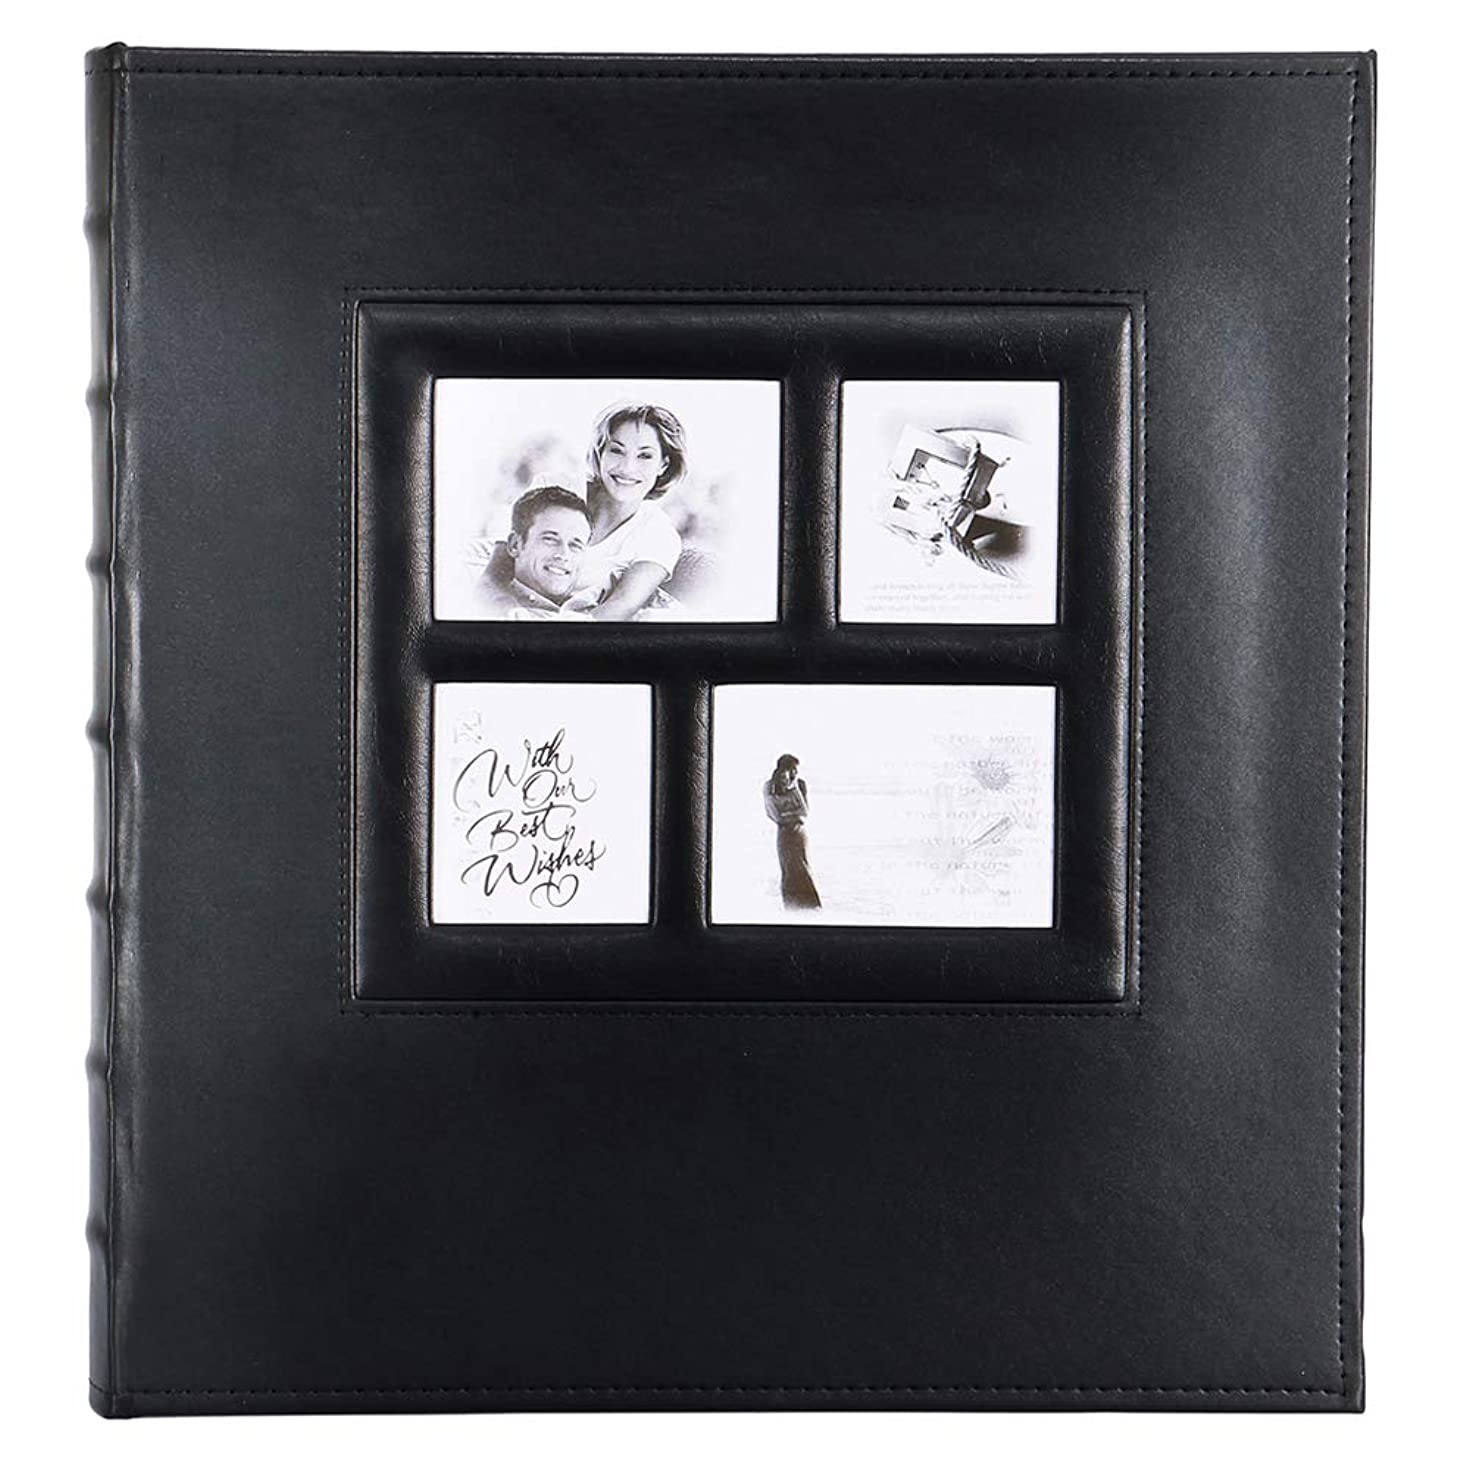 Photo Picture Album Self Adhesive, Self Stick Sticky Extra Large Leather Photo Albums with Magnetic Pages Holds Vertical Horizontal 3x5, 4x6, 5x7, 6x8, 8x10 Photos (30 Sheets / 60 Pages, Black)